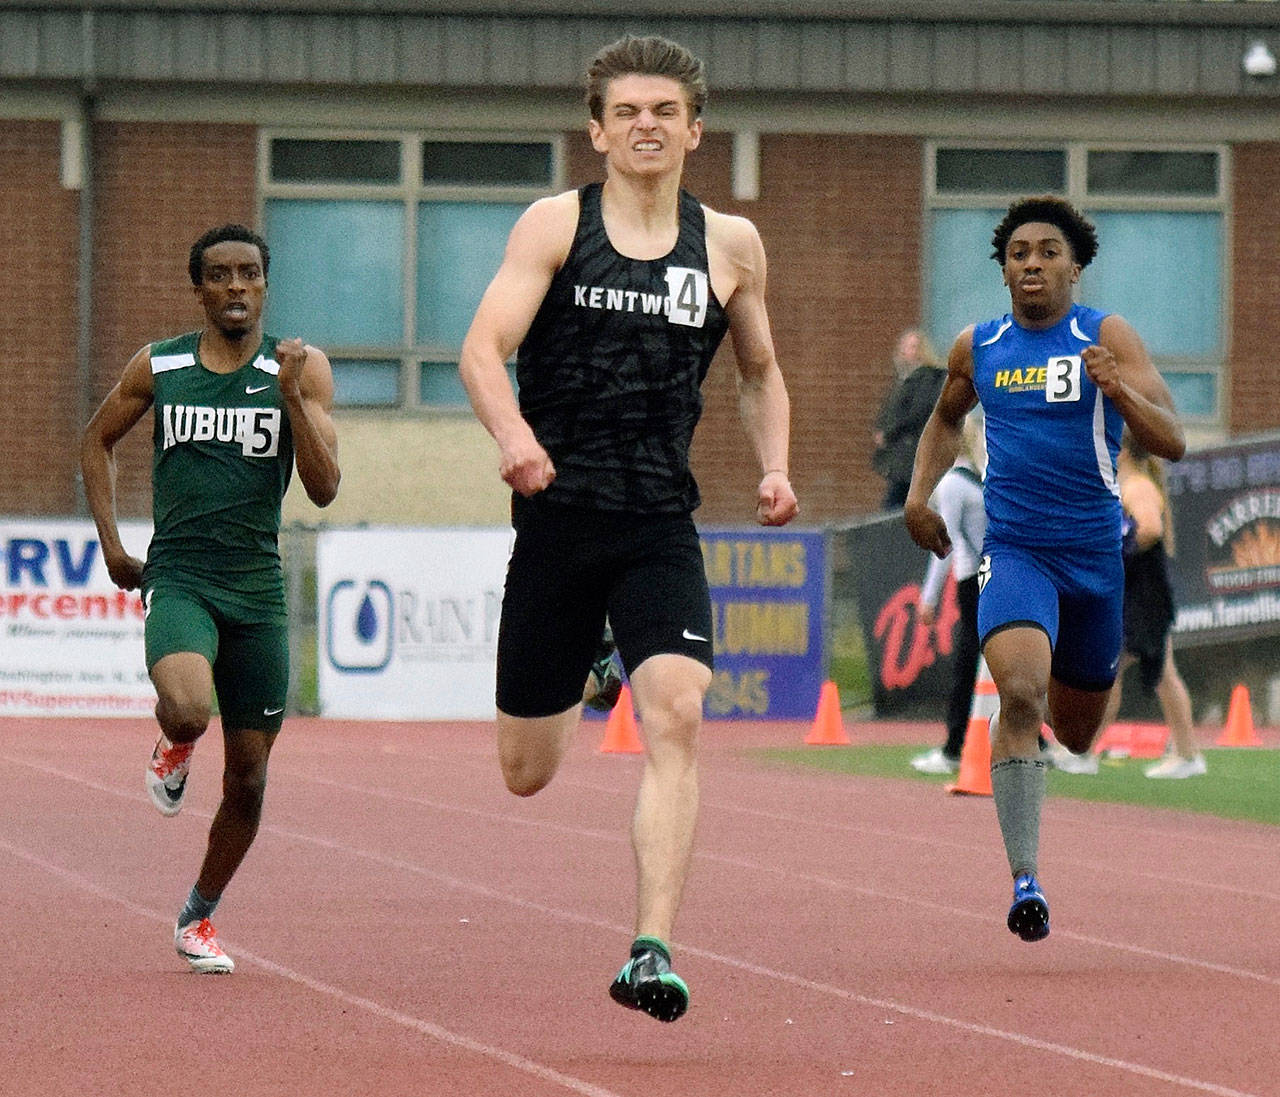 Kentwood's Daniel Gaik darts to the finish line in his 400-meter heat at the bi-district meet on May 16. Gaik qualified for state with the second-best time of 49.62 seconds. RACHEL CIAMPI, Kent Reporter